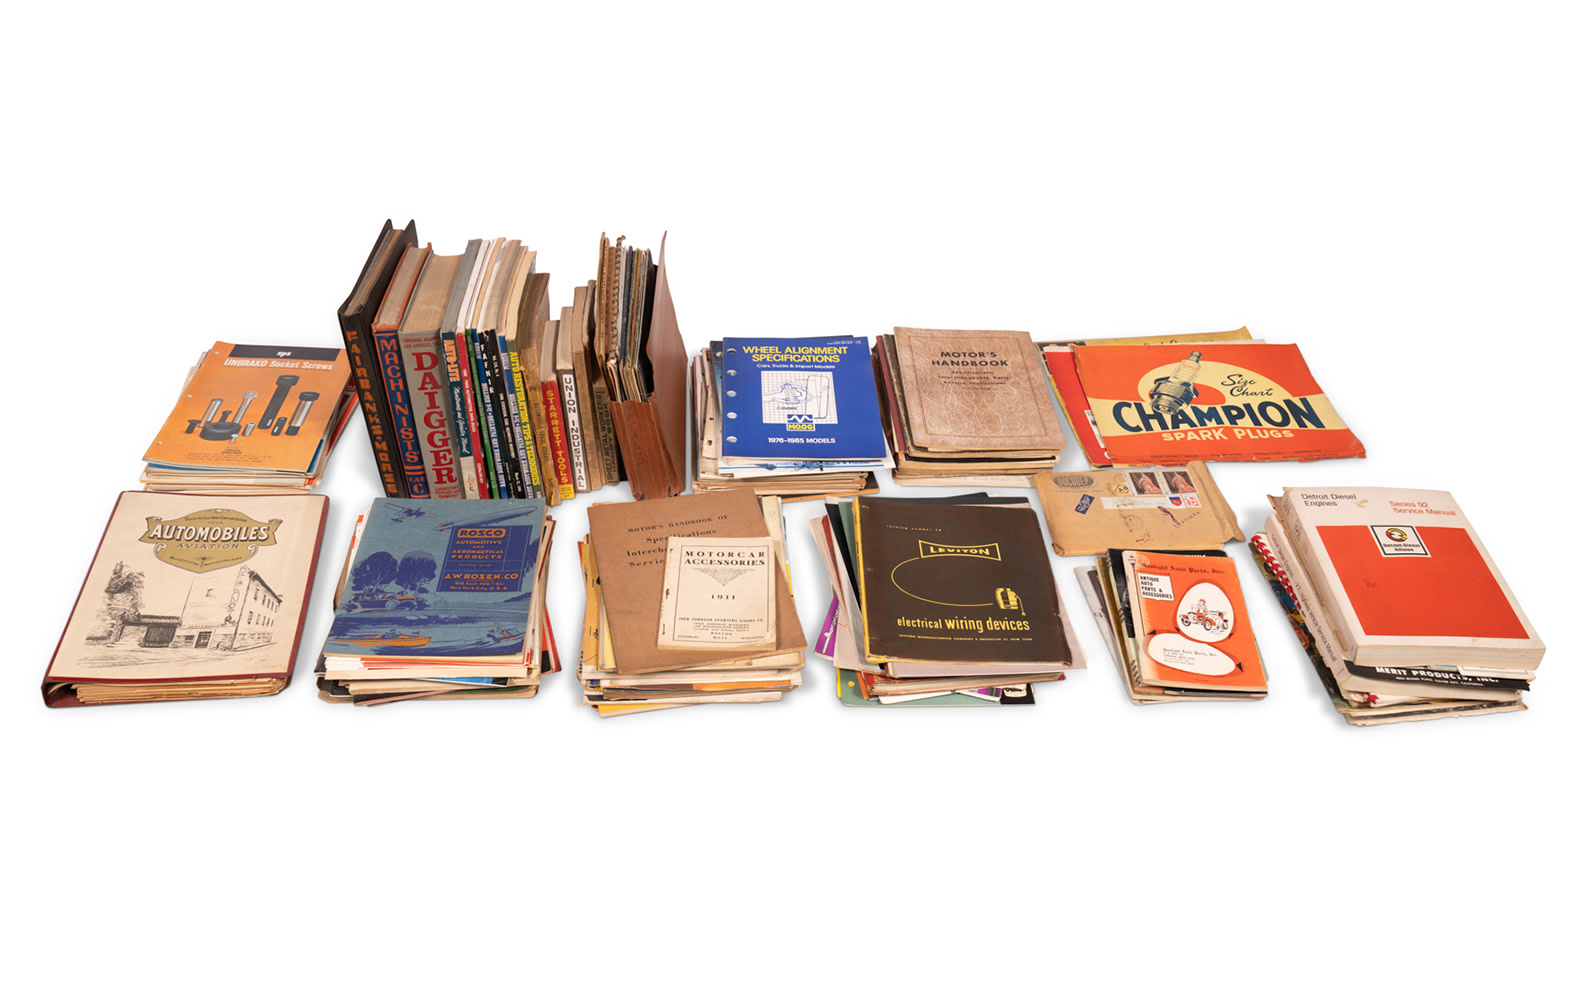 Assorted Parts and Machinery Manuals and Literature